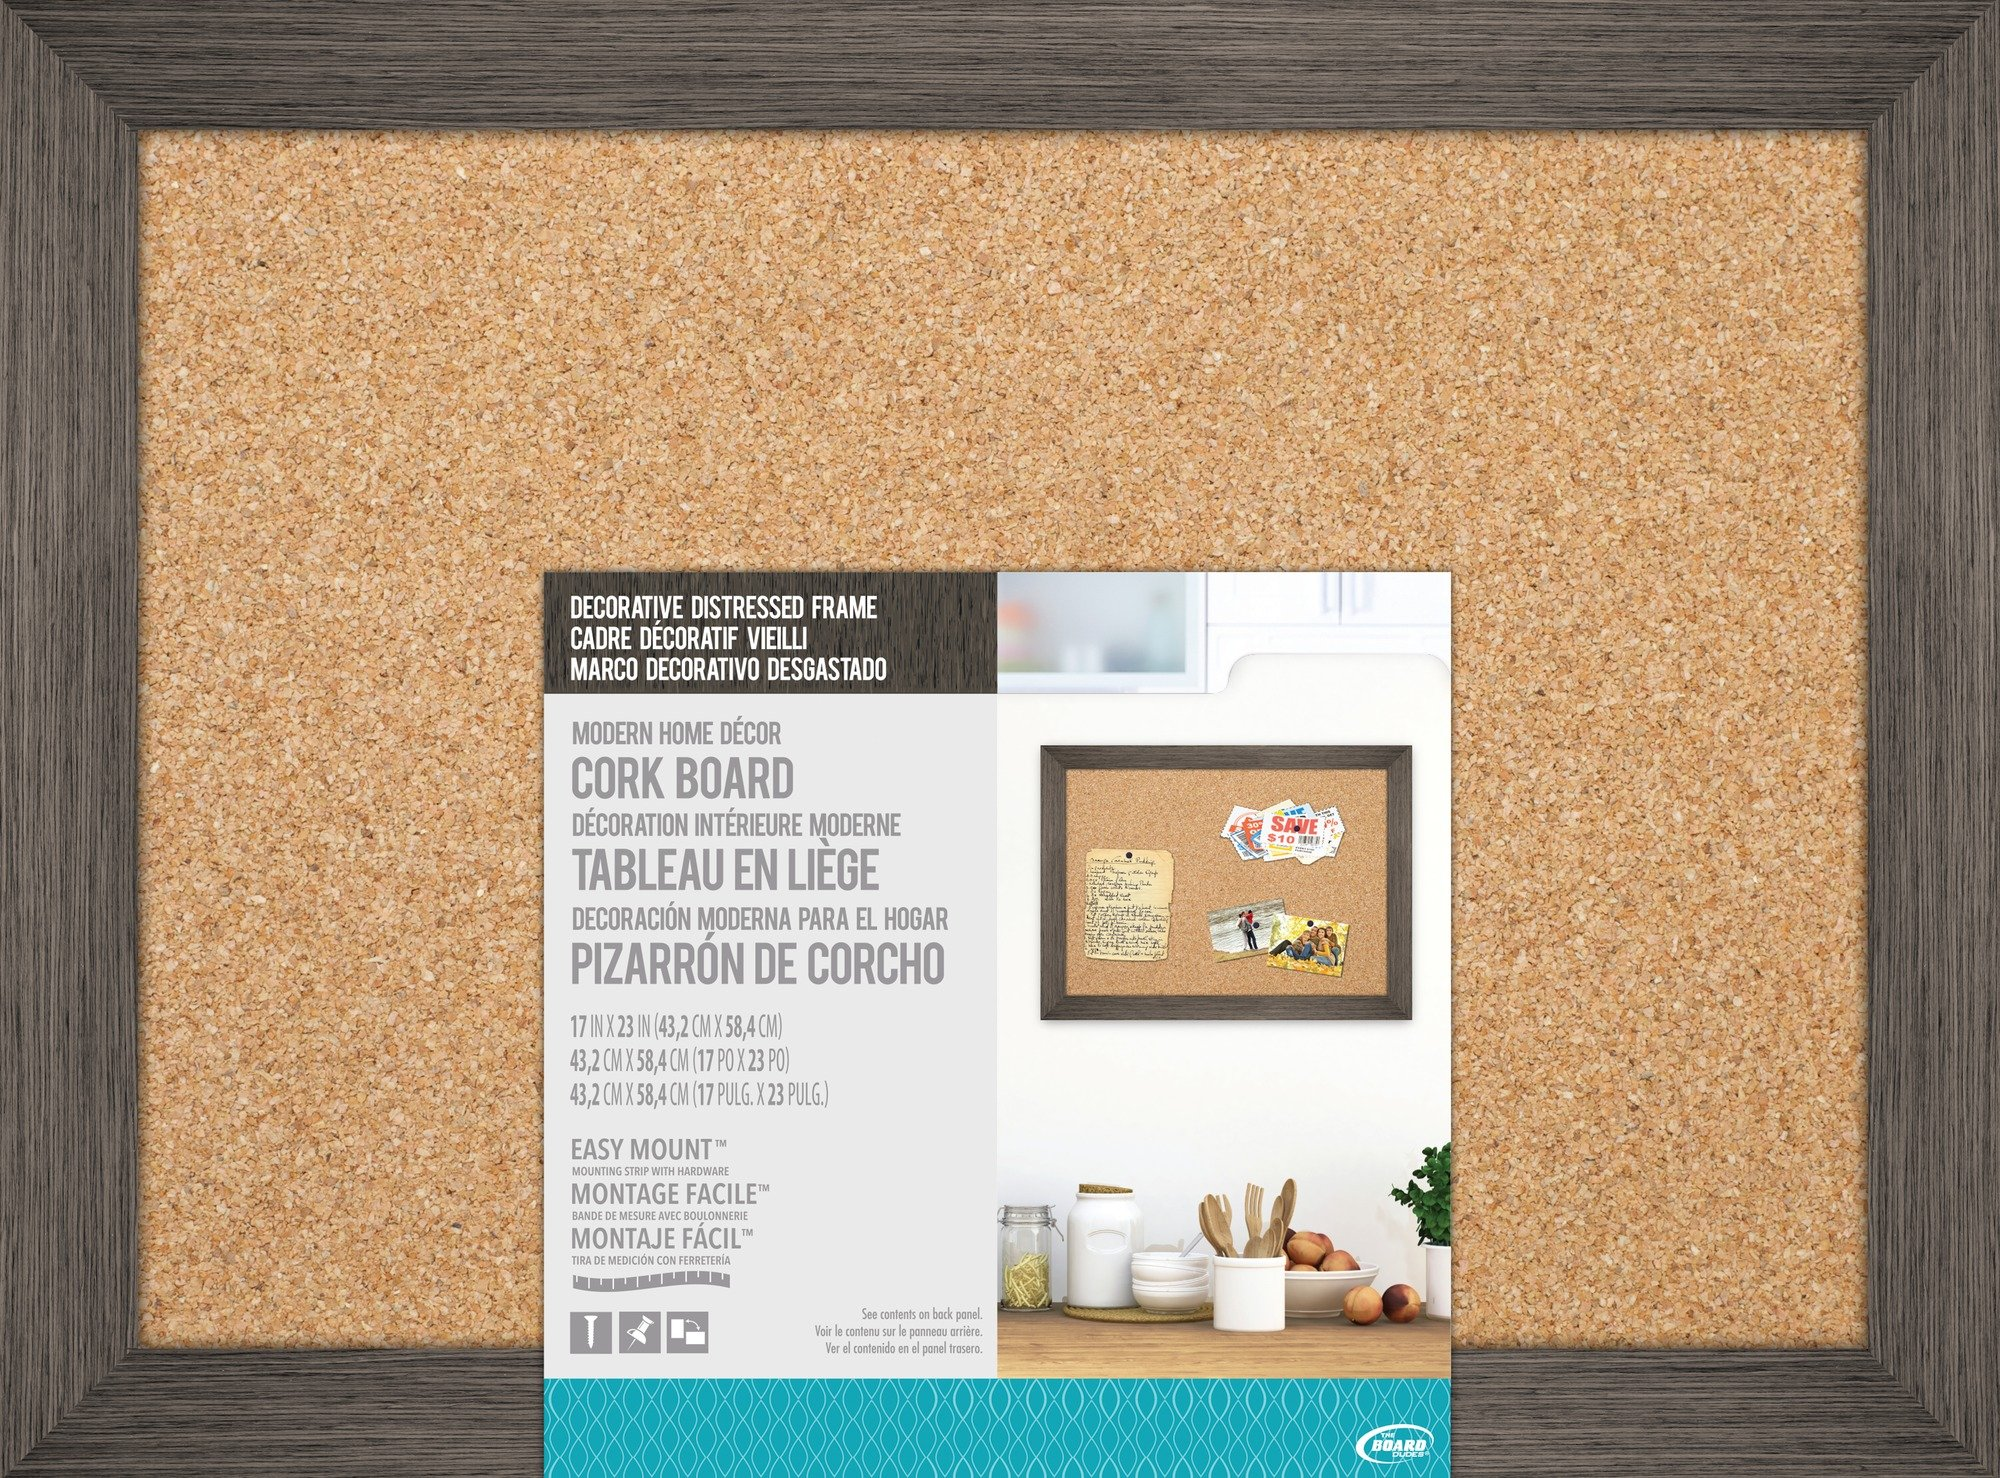 The Board Dudes 17″ X 23″ Cork Board with Decorative Distressed Wood Frame